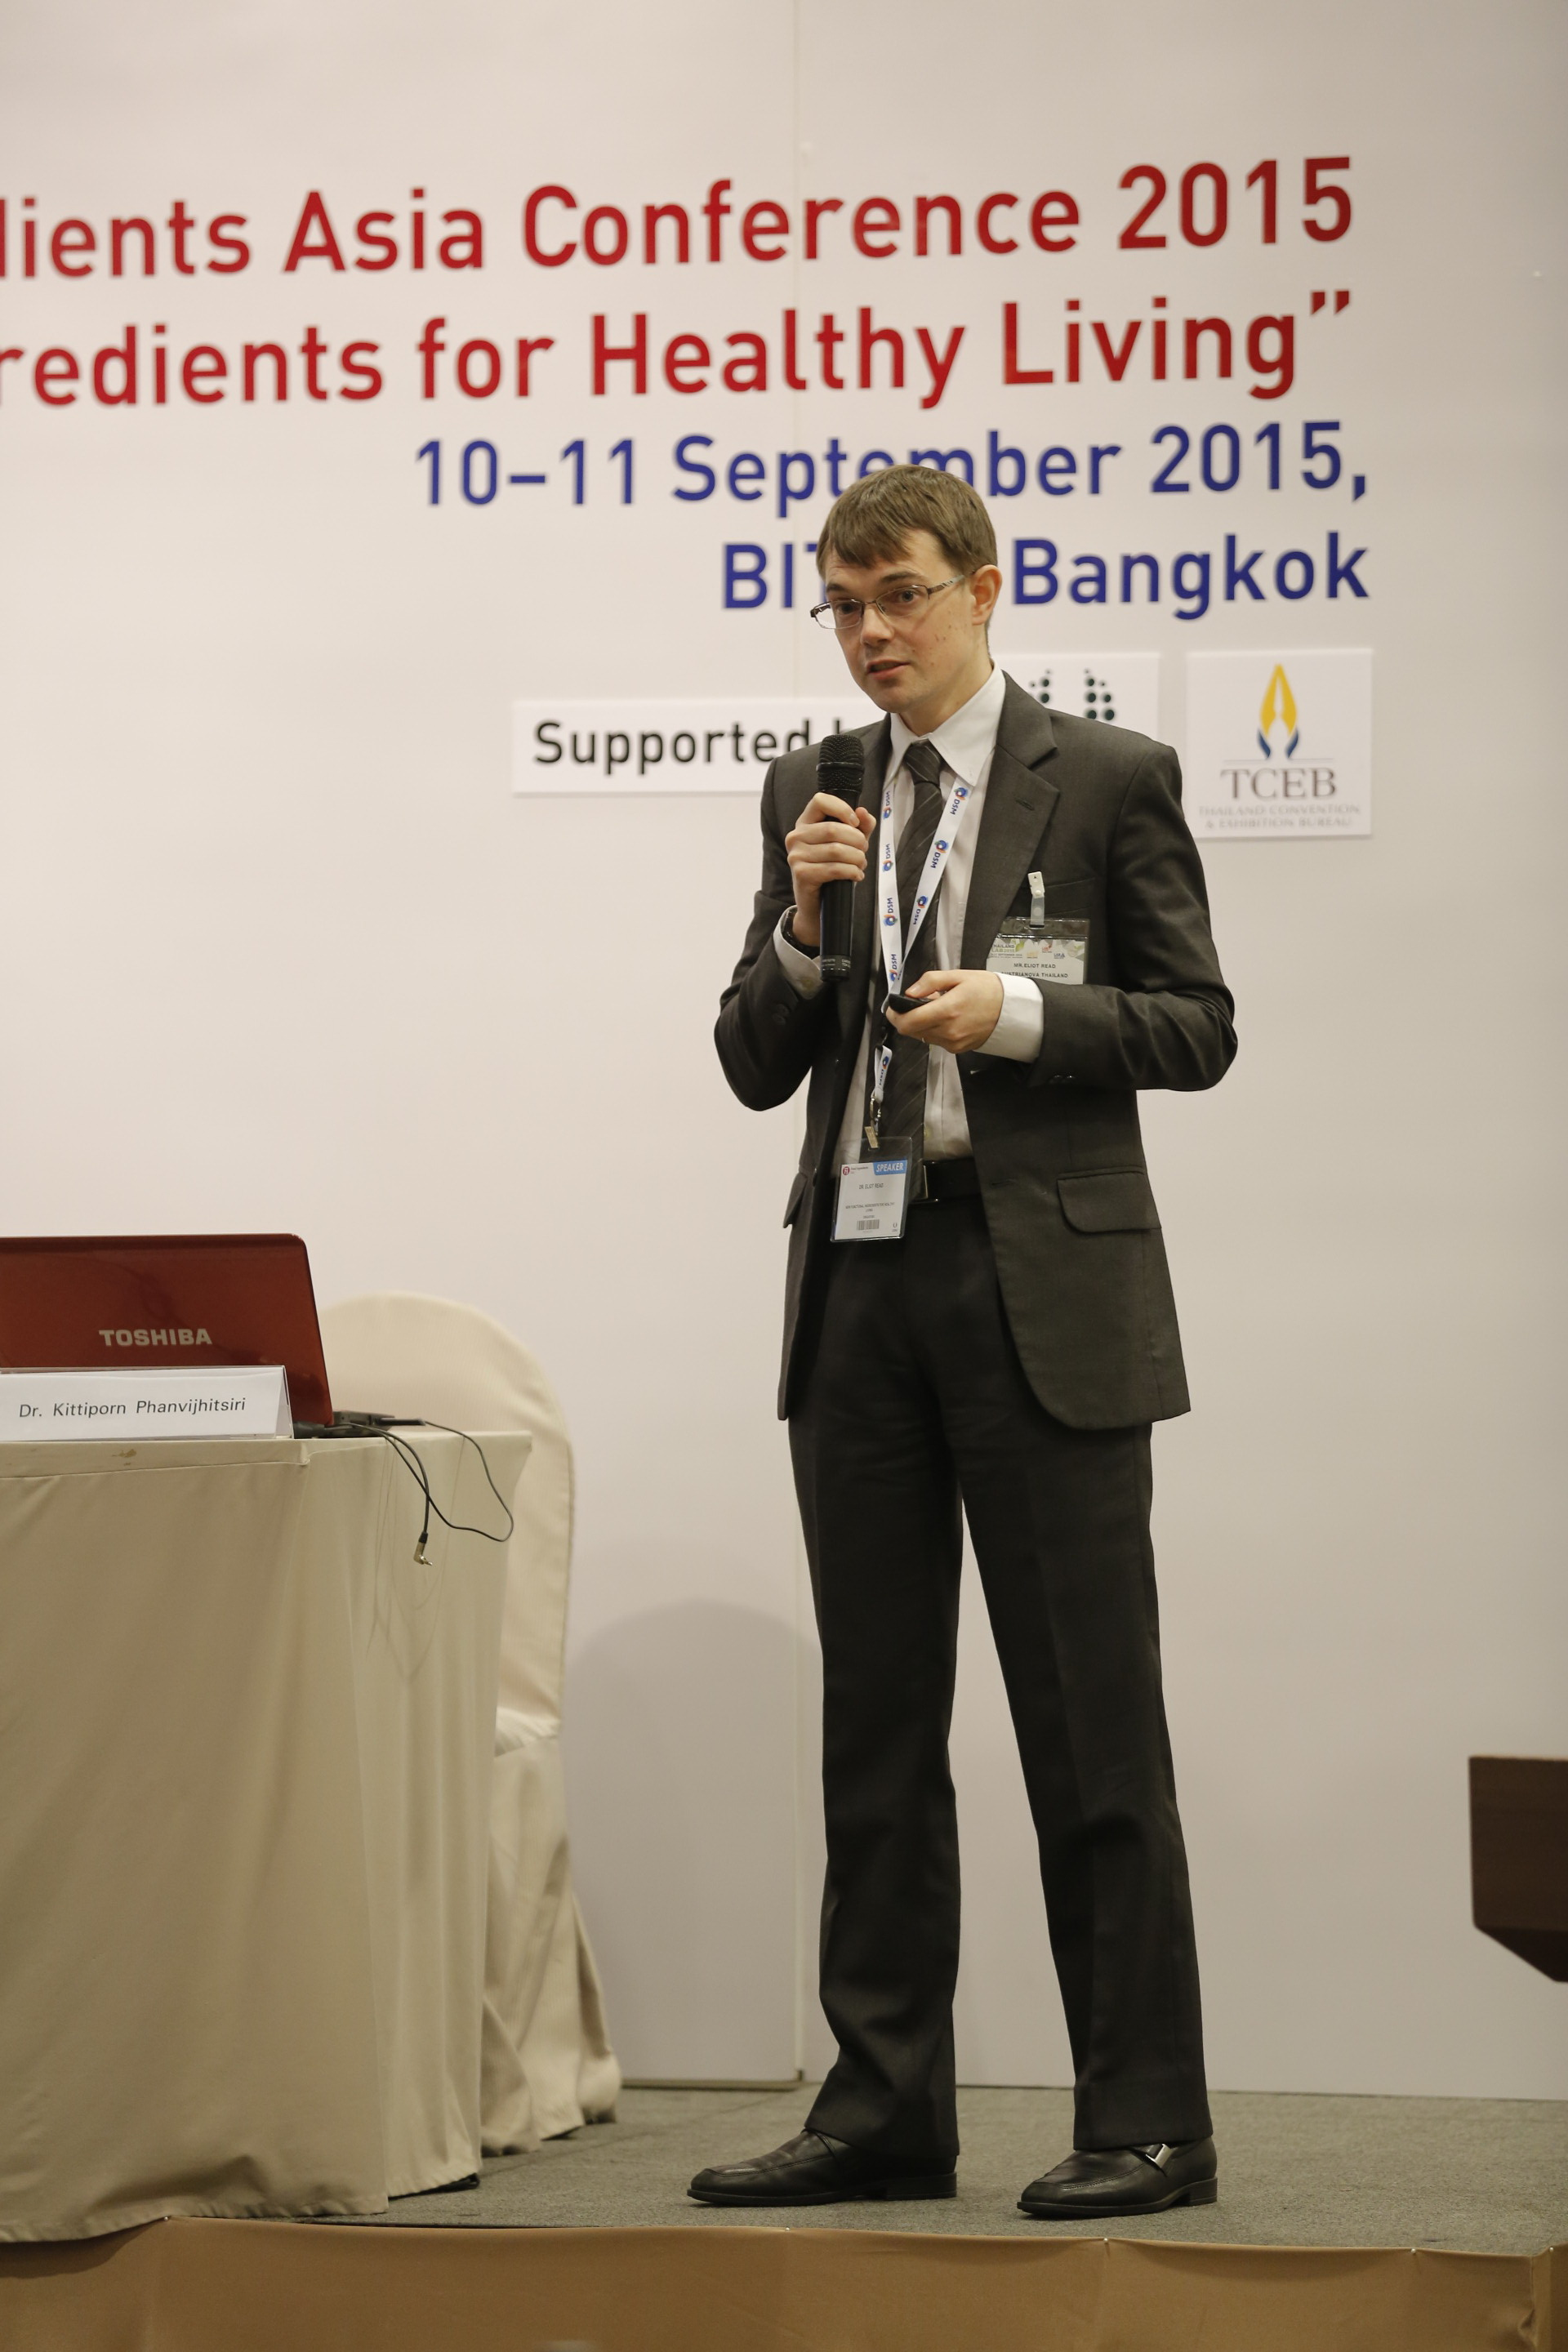 Dr. Eliot Read presenting at Food Ingredients Asia Conference 2015 at BITEC, Thailand